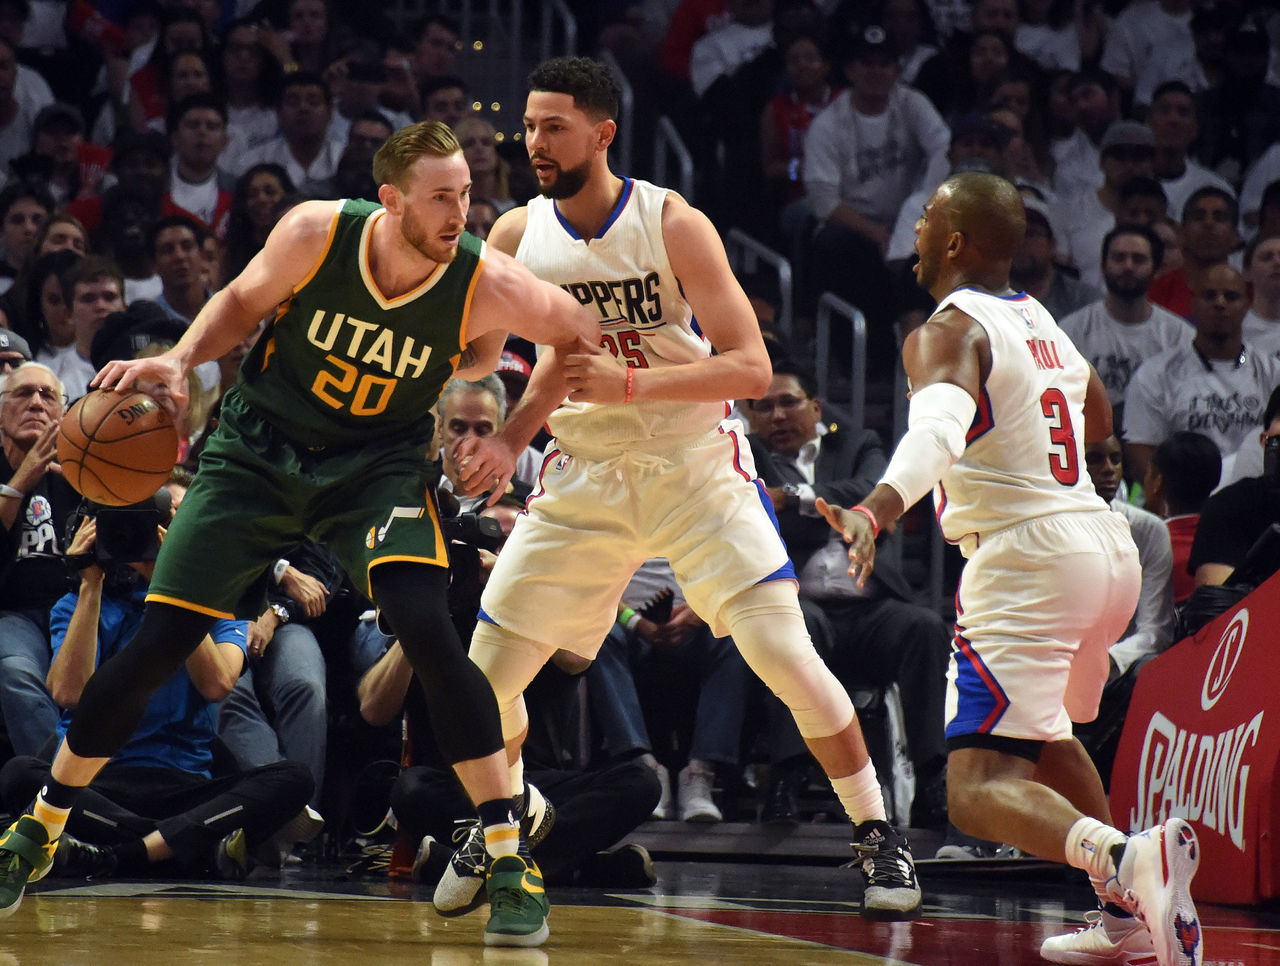 Cropped 2017 04 26t031451z 2134733890 nocid rtrmadp 3 nba playoffs utah jazz at los angeles clippers